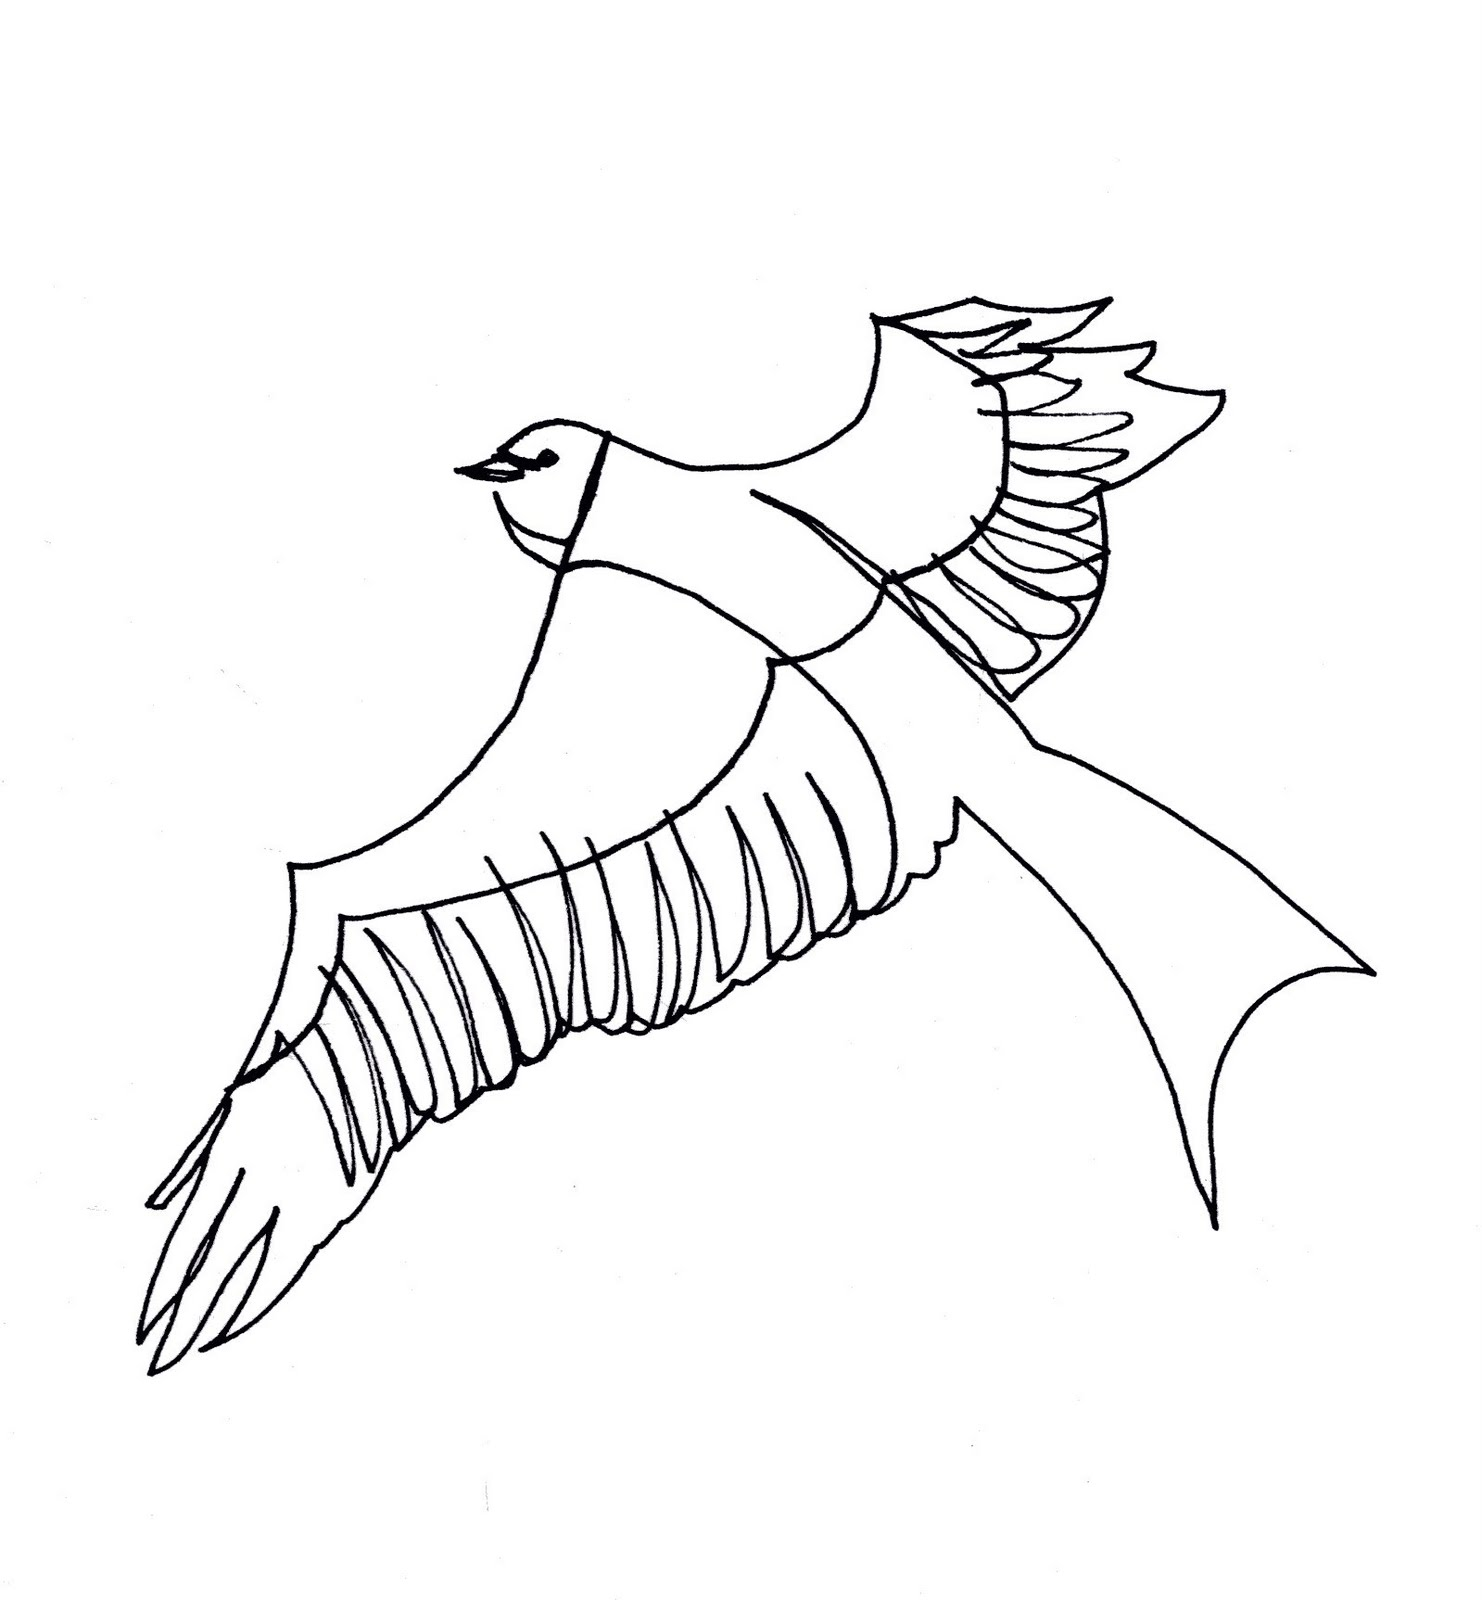 Best Line Drawing Single Line Drawings Birds of